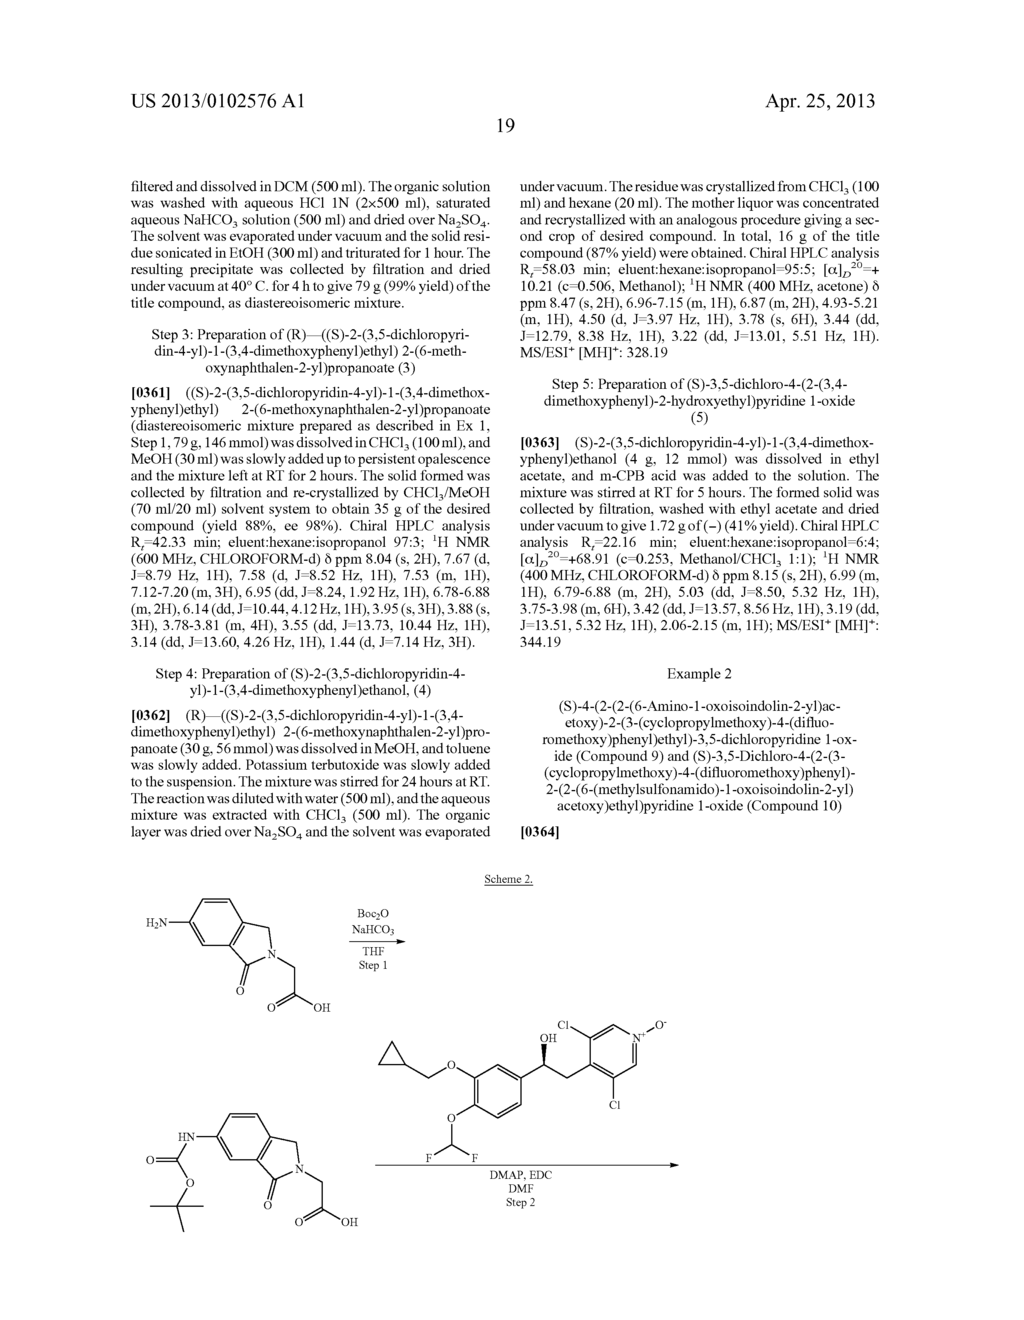 DERIVATIVES OF 1-PHENYL-2-PYRIDINYL ALKYL ALCOHOLS AS PHOSPHODIESTERASE     INHIBITORS - diagram, schematic, and image 20